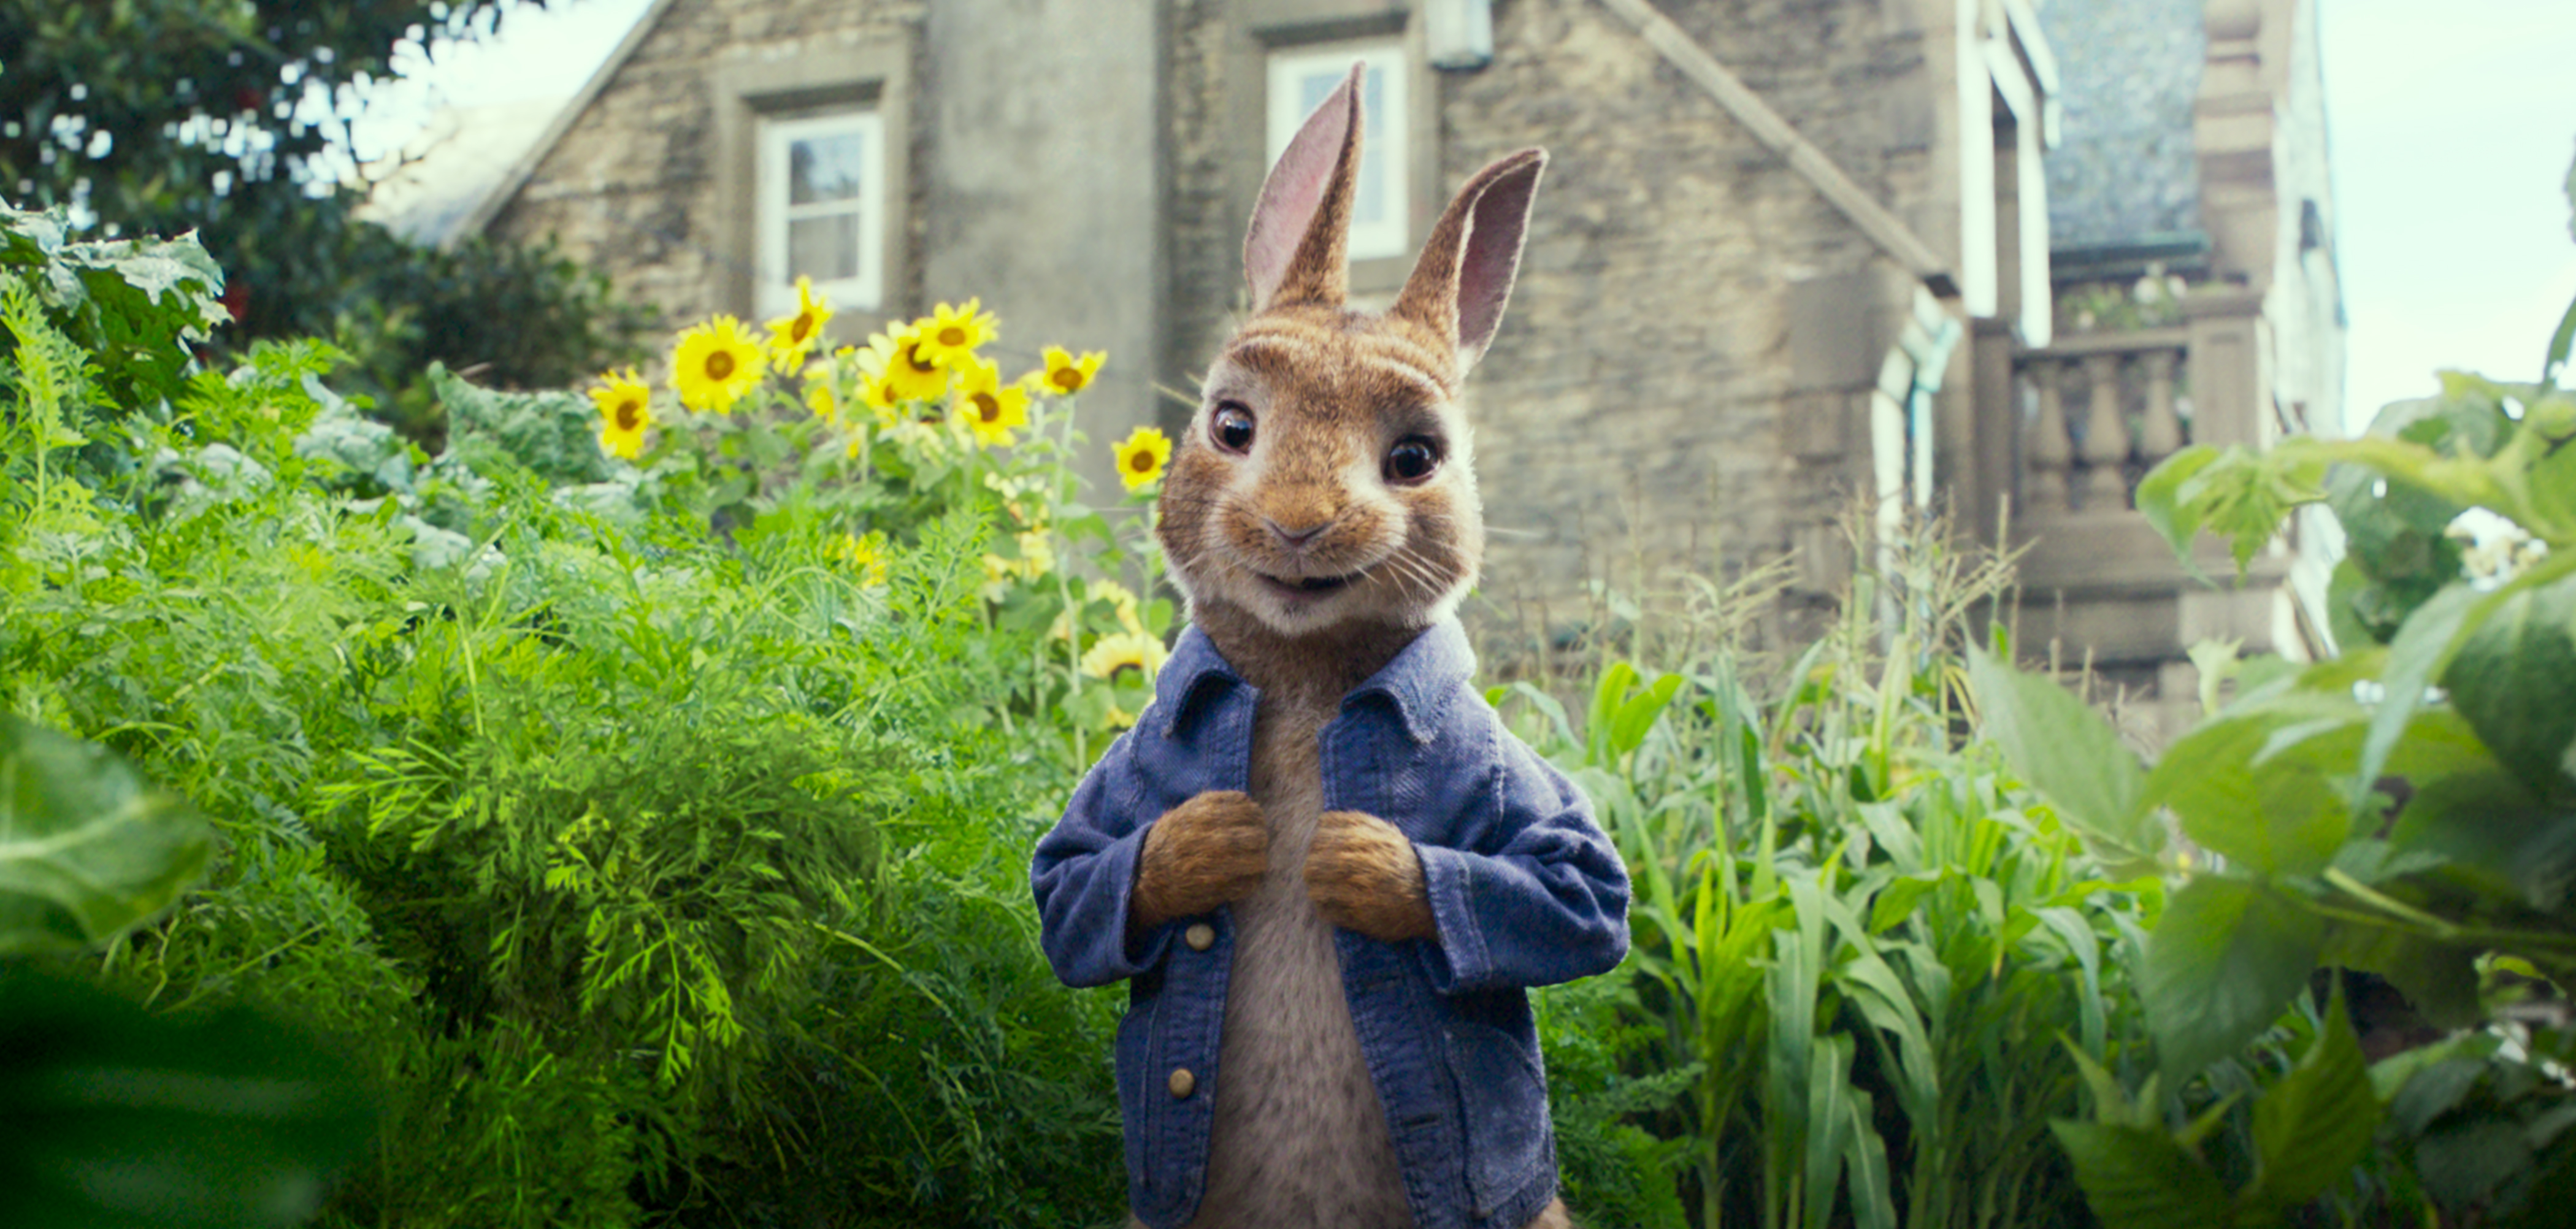 Kirsty Millar is making audiences very hoppy with her VFX talent on screen with Peter Rabbit, News